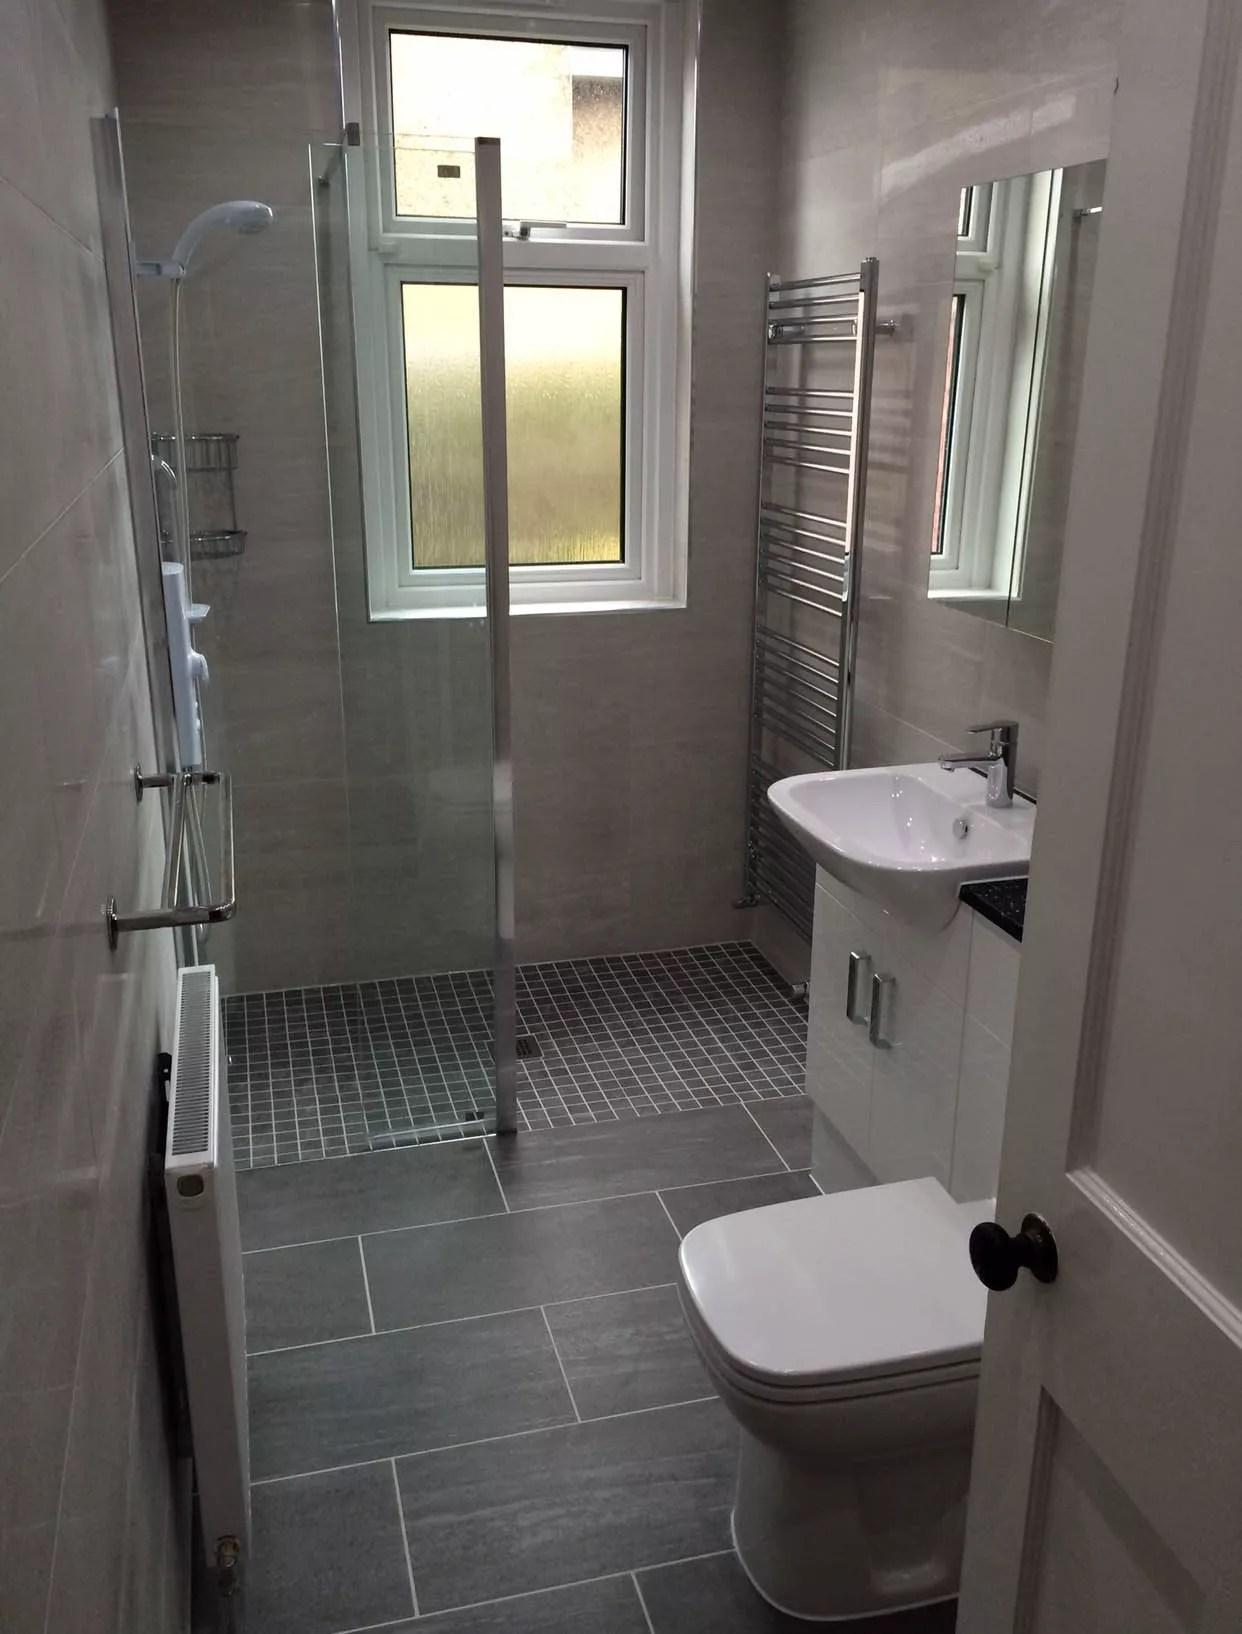 Creating bathrooms in small spaces   BMAS on Small Space Bathroom  id=15397